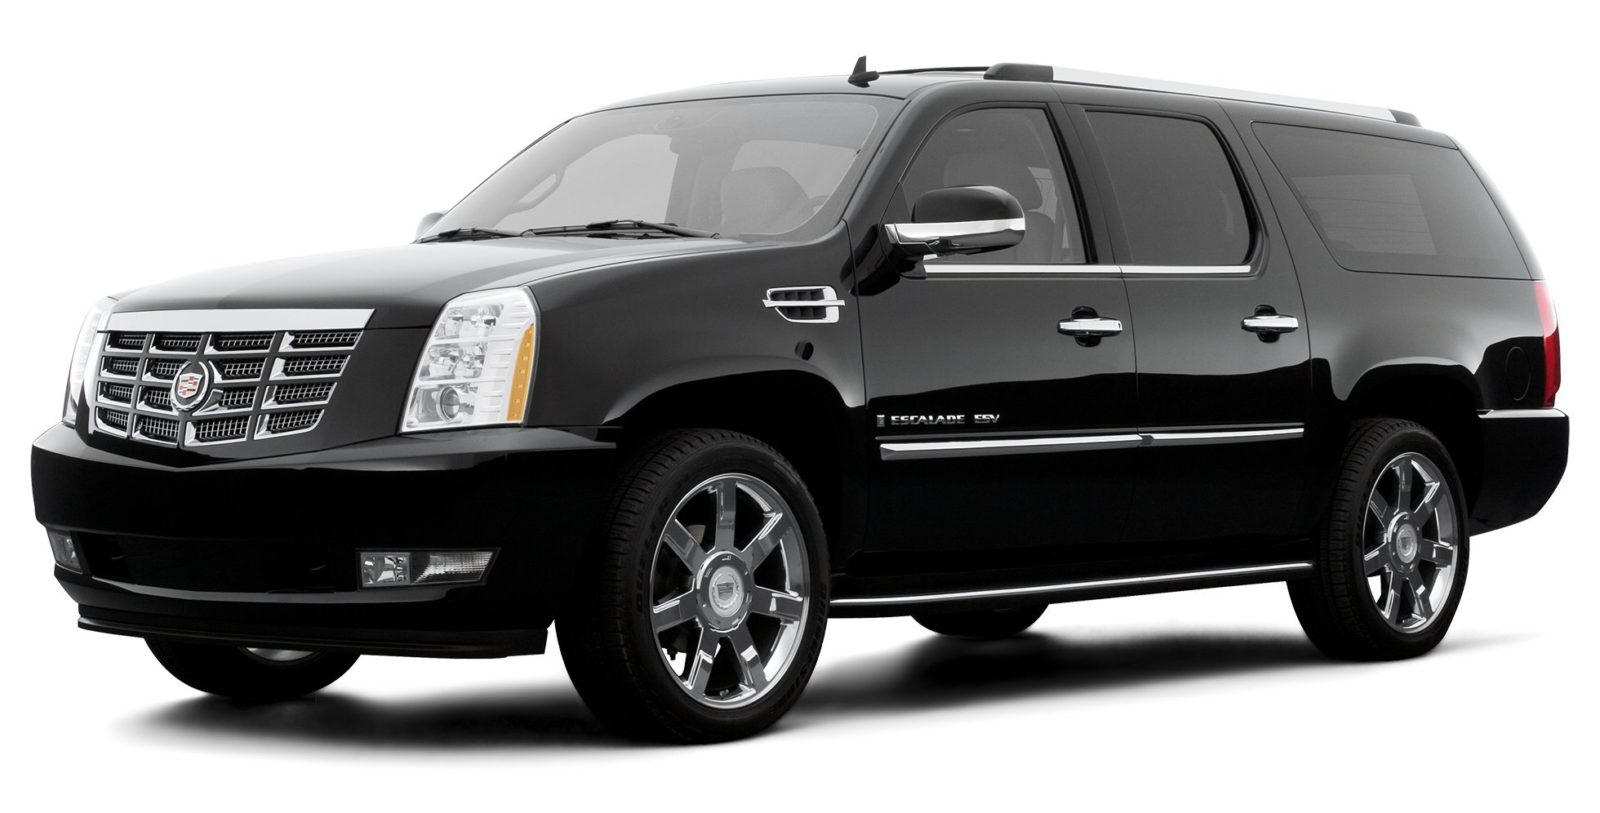 Get chauffeured in a Cadillac Escalade ESV